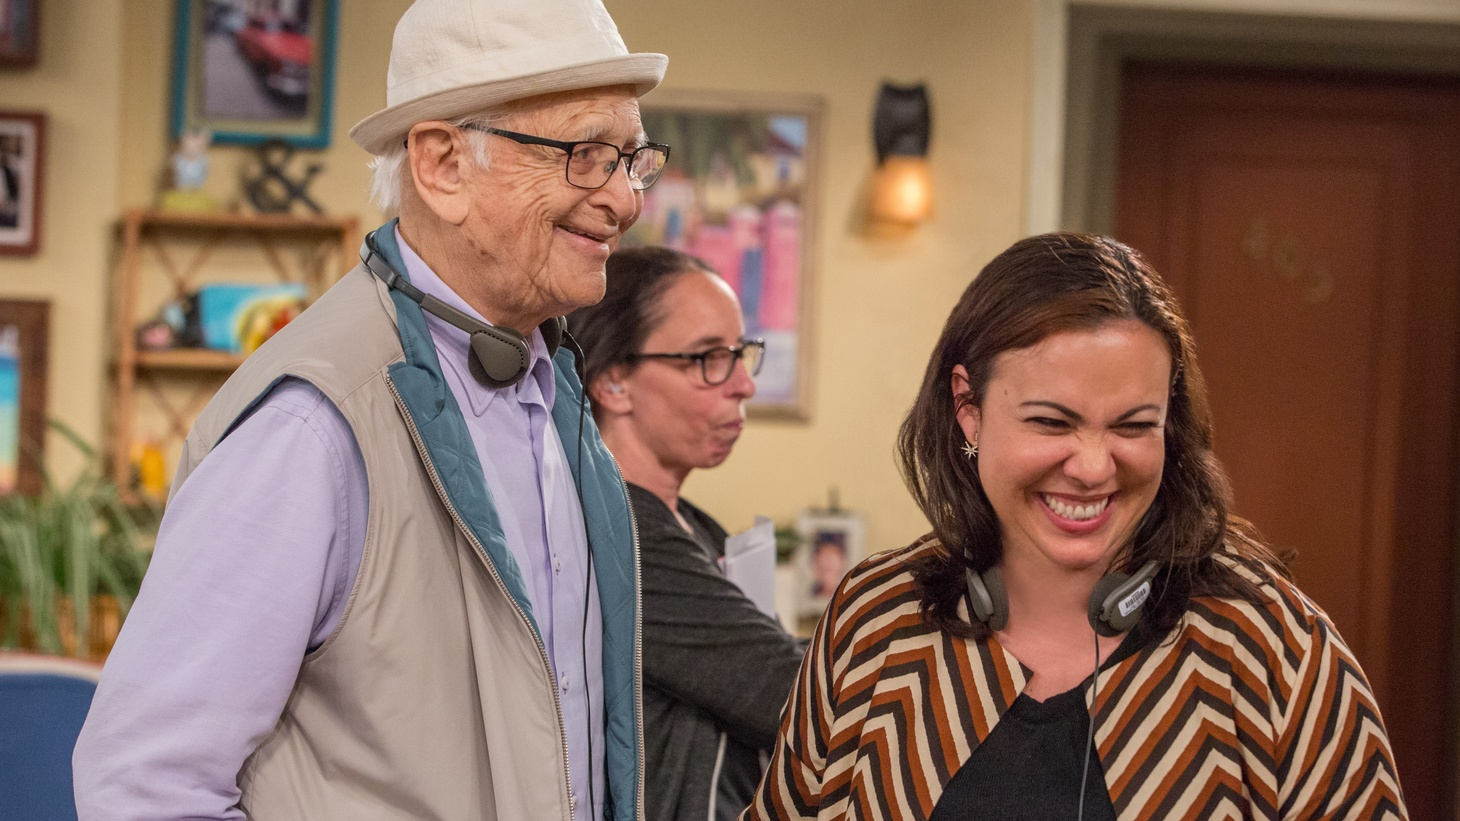 When Norman Lear decided to reboot the classic sitcom One Day at a Time, this time with a Latino family, he wanted a writer-producer who could offer an authentic voice to the project. He found that person in Gloria Calderón Kellett, who incorporated much of her own background into the show, including making the family Cuban.